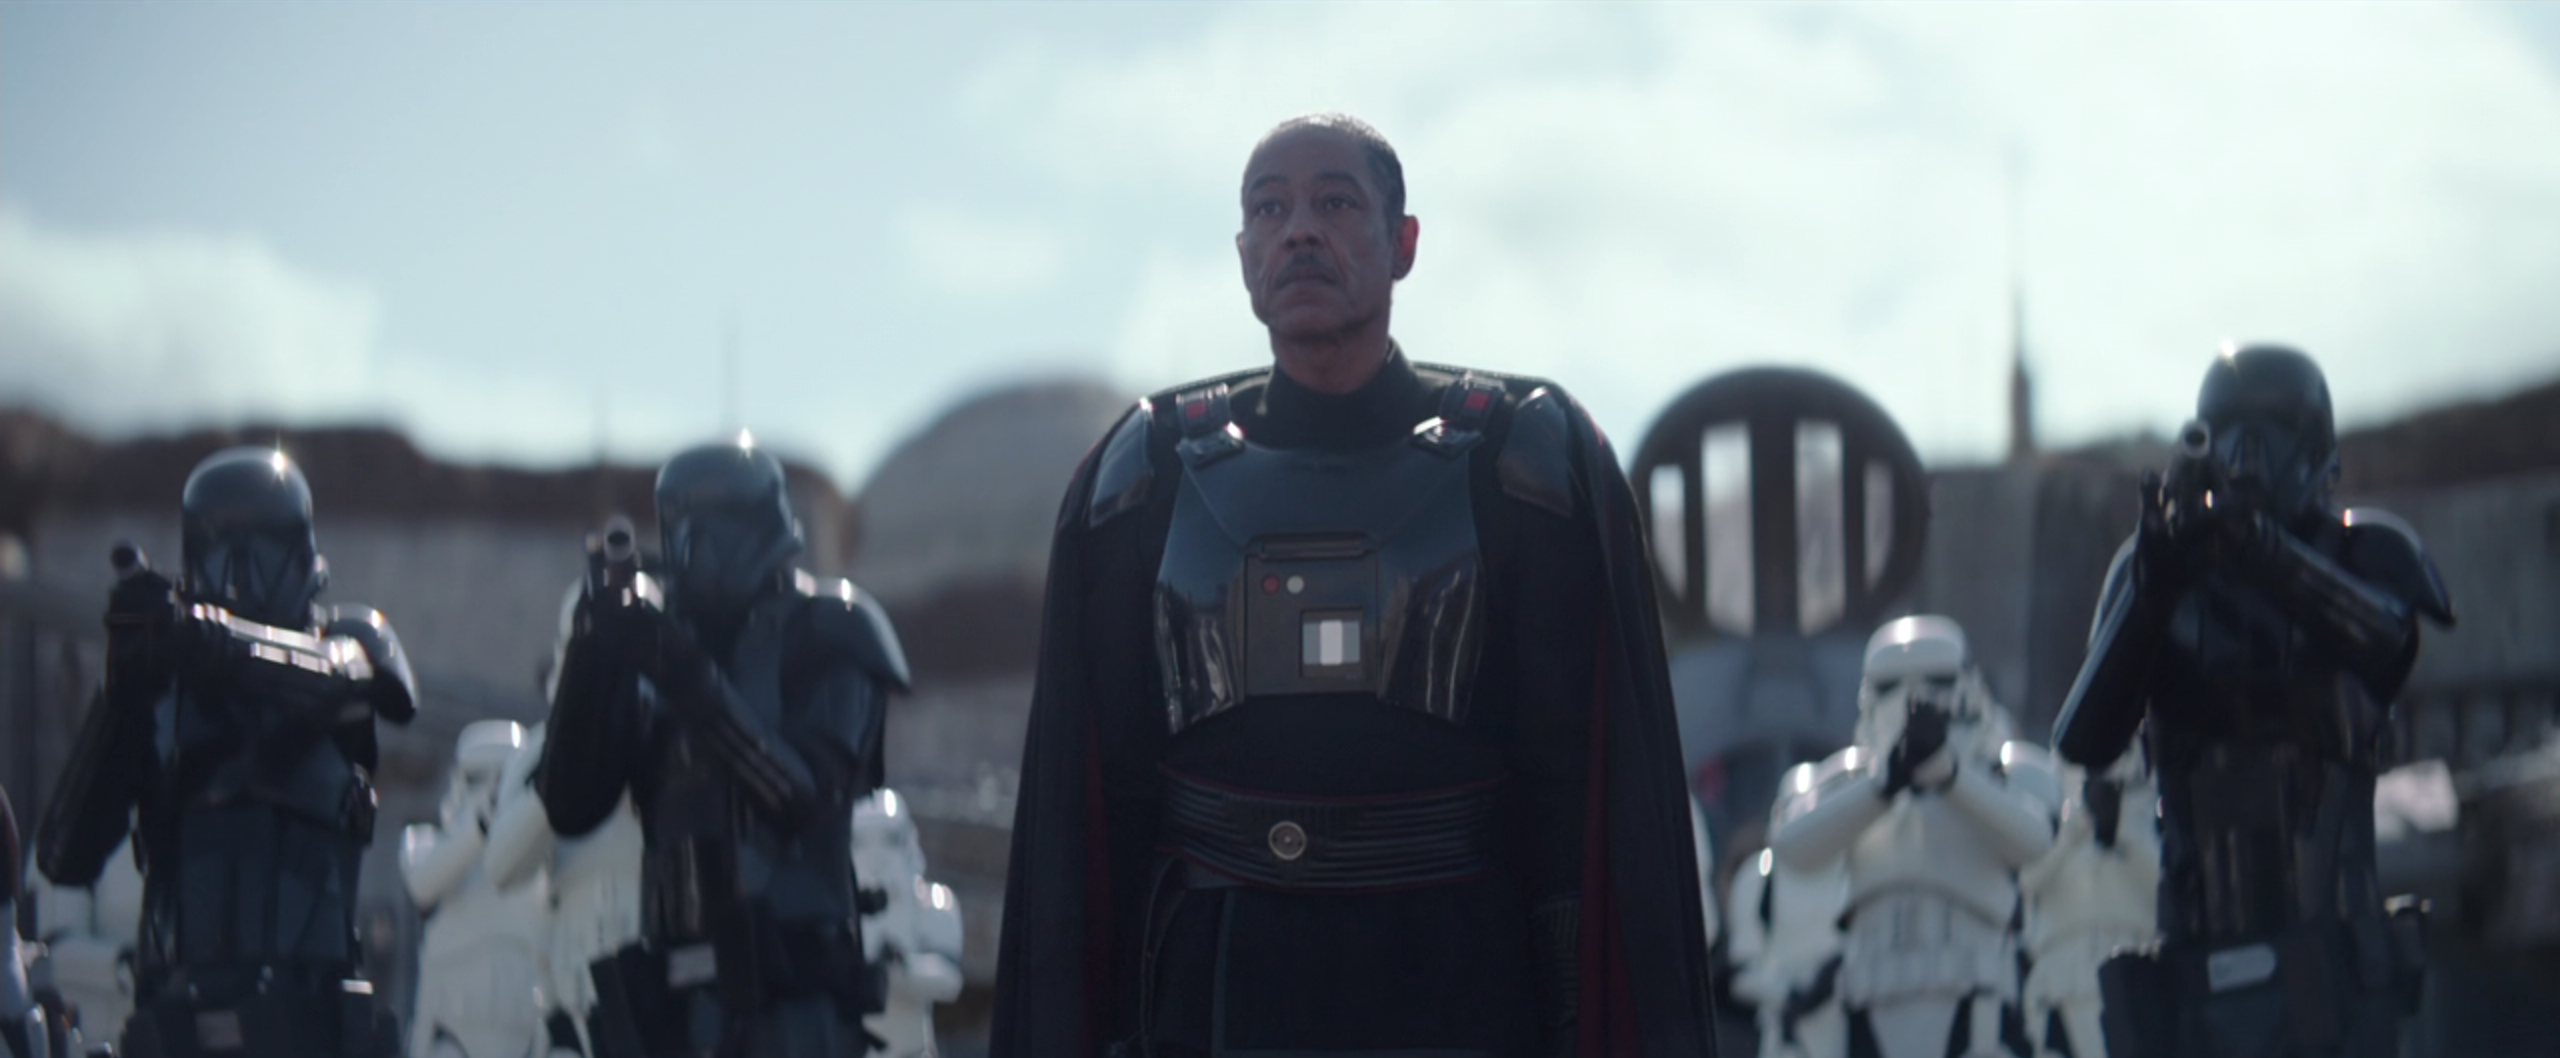 Moff Gideon on The Mandalorian Is Already a Legendary TV Villain